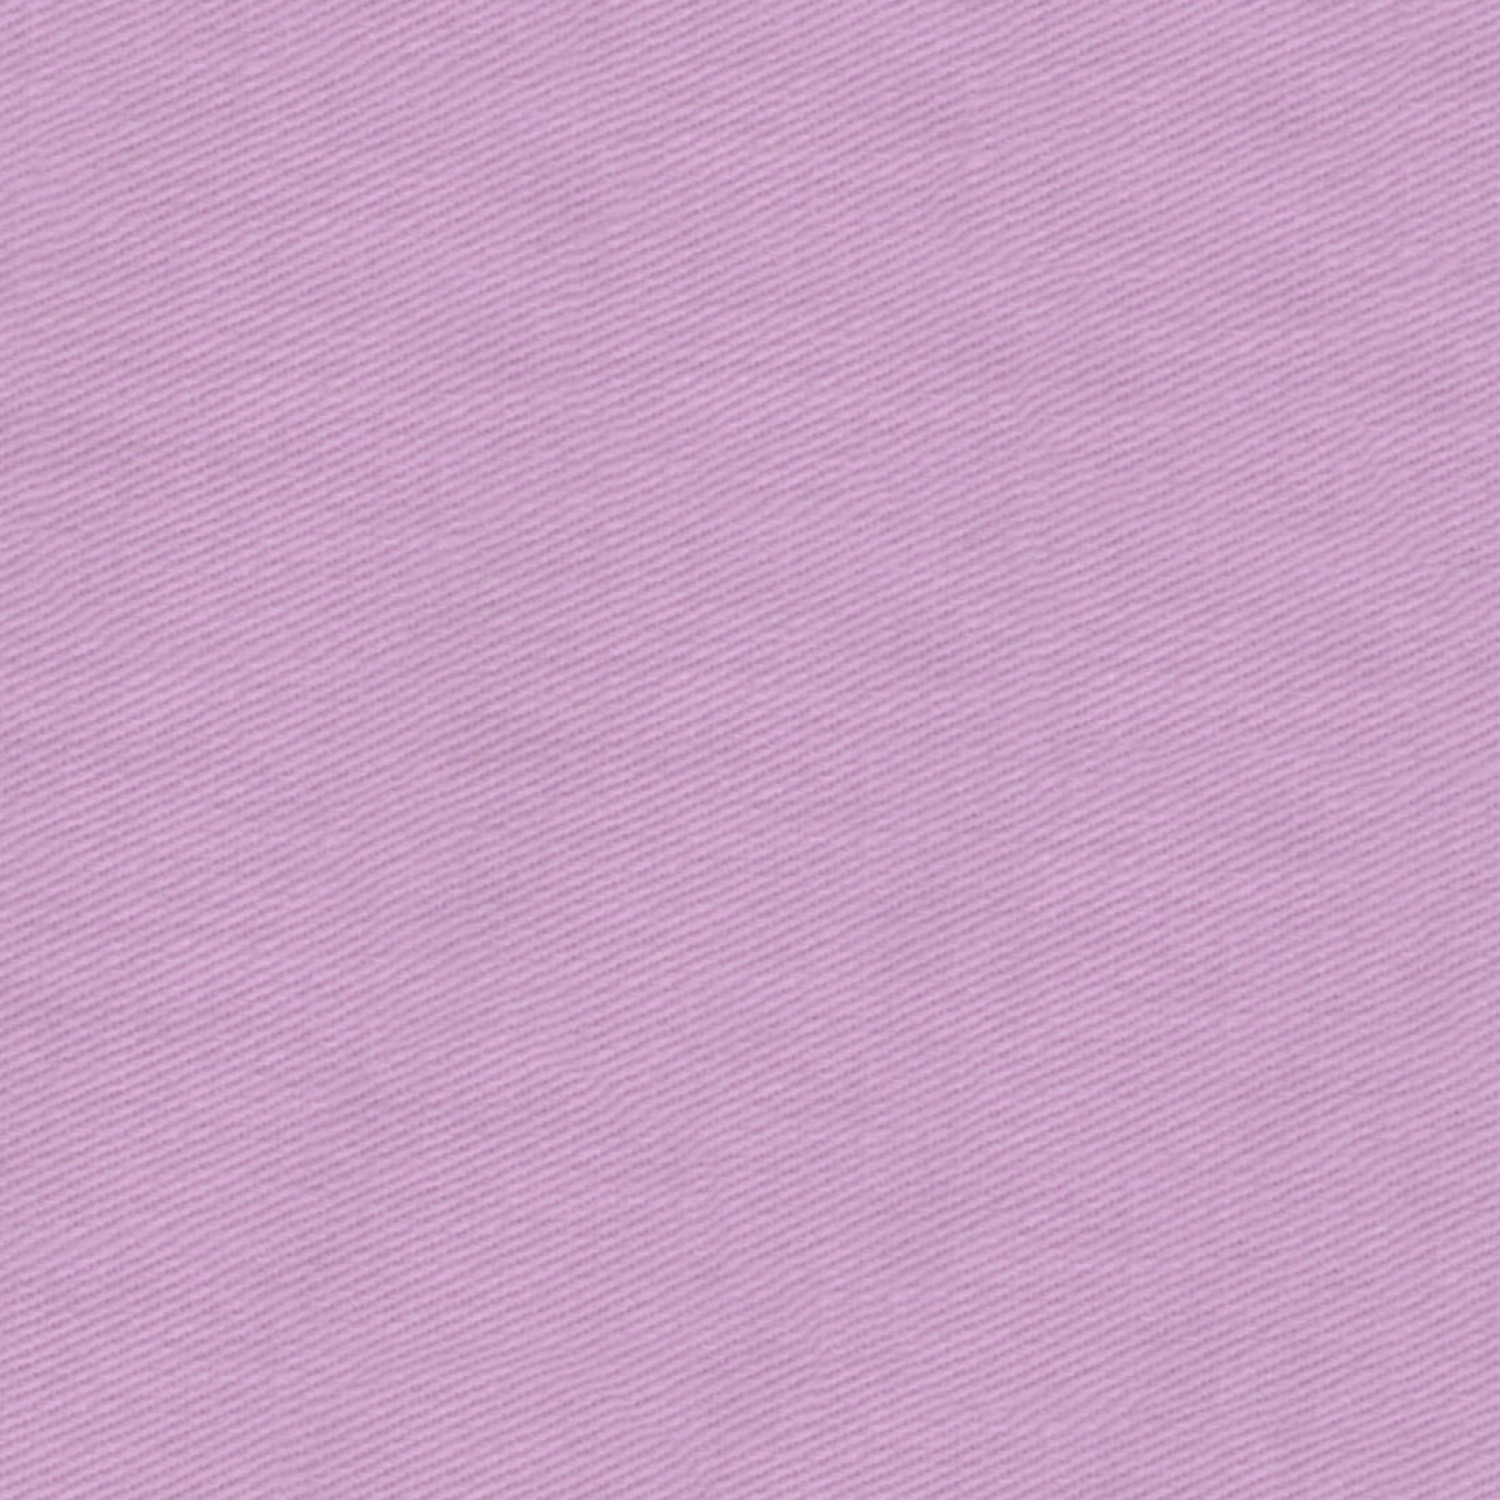 "Milestone Twill Sweet Pink Fabric 7oz - 60"" Wide x Per Yard"